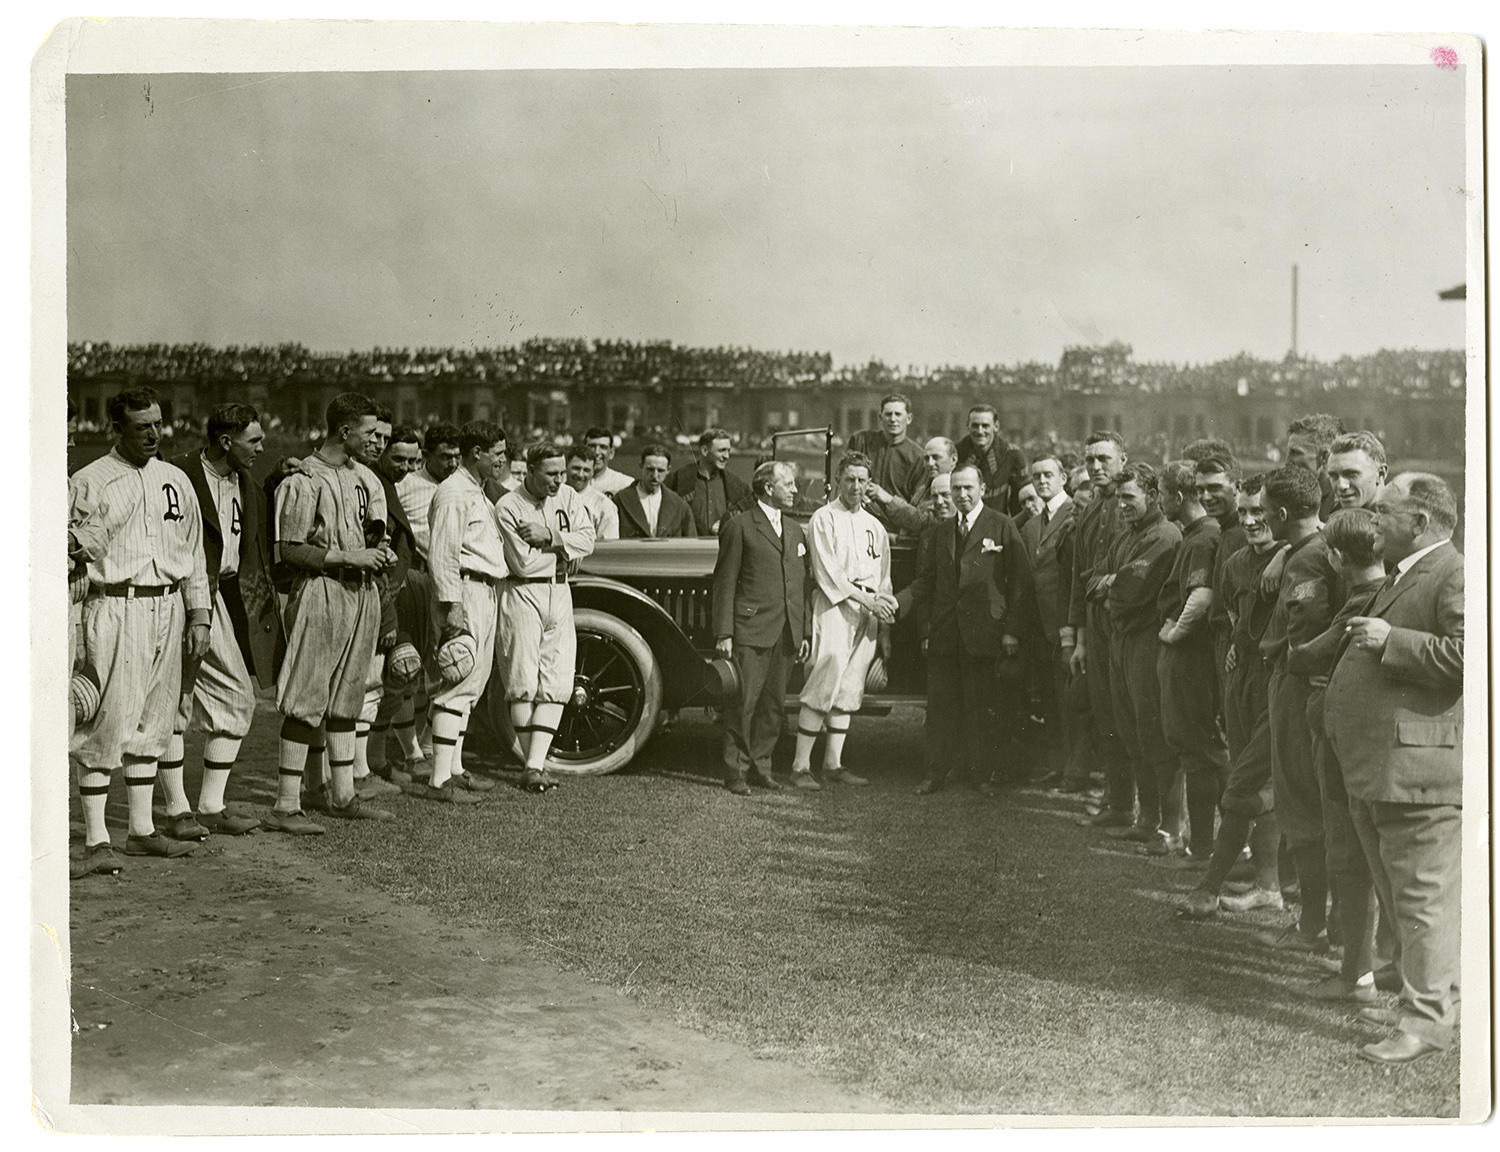 Eddie Collins accepts the Chalmers Car (the de facto Most Valuable Player Award) at Opening Game of the 1914 World Series at Shibe Park in Philadelphia on October 9. (Paul Thompson/National Baseball Hall of Fame and Museum)